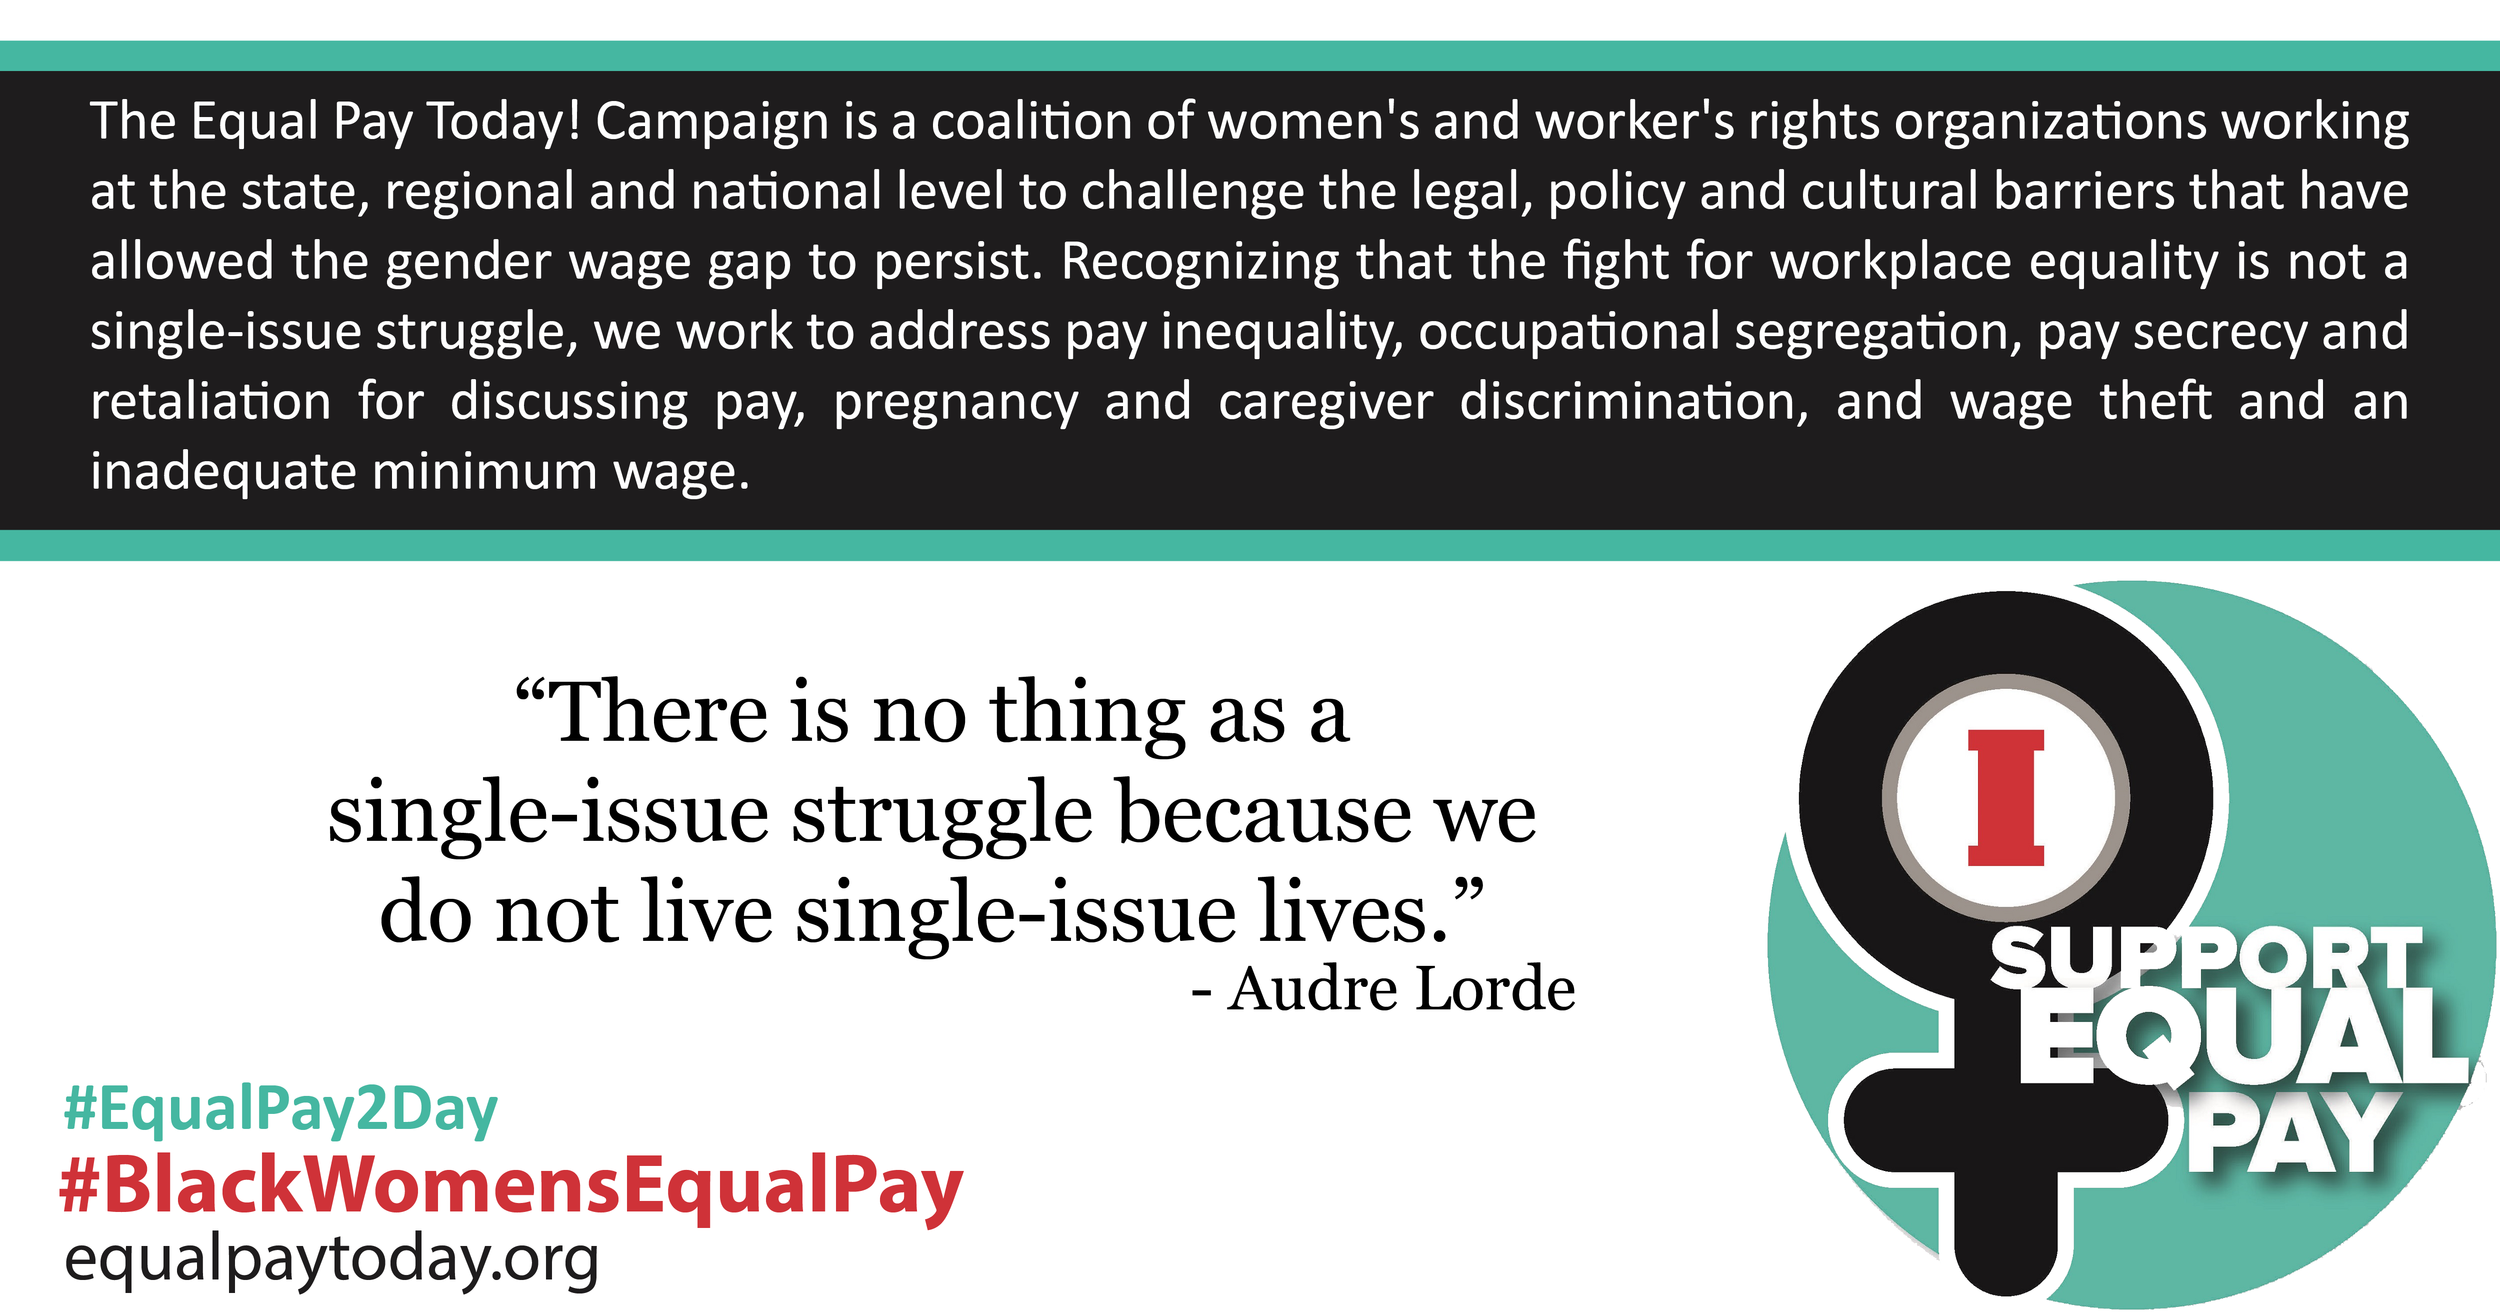 EPT Audre Lorde BWEPD Info Graphic.png